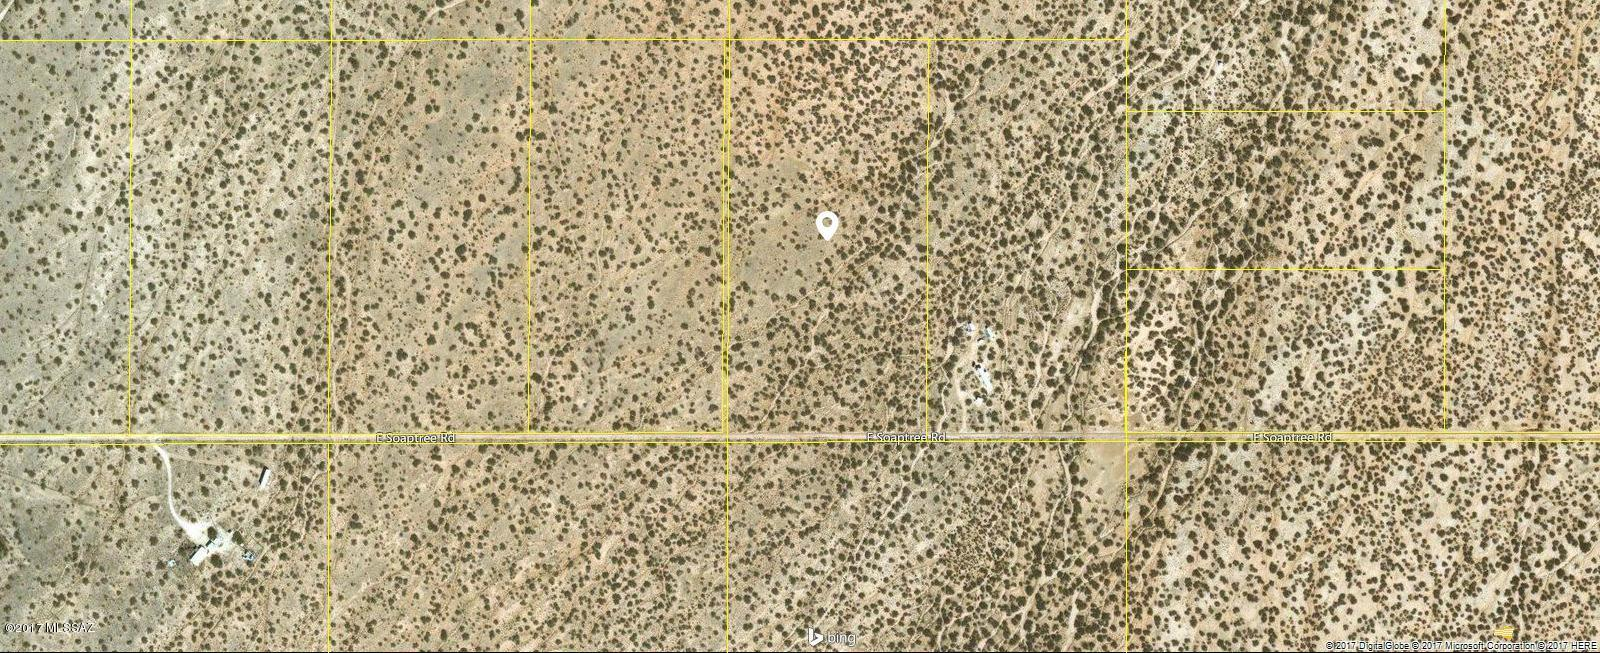 20 Acres off of Soaptree Rd